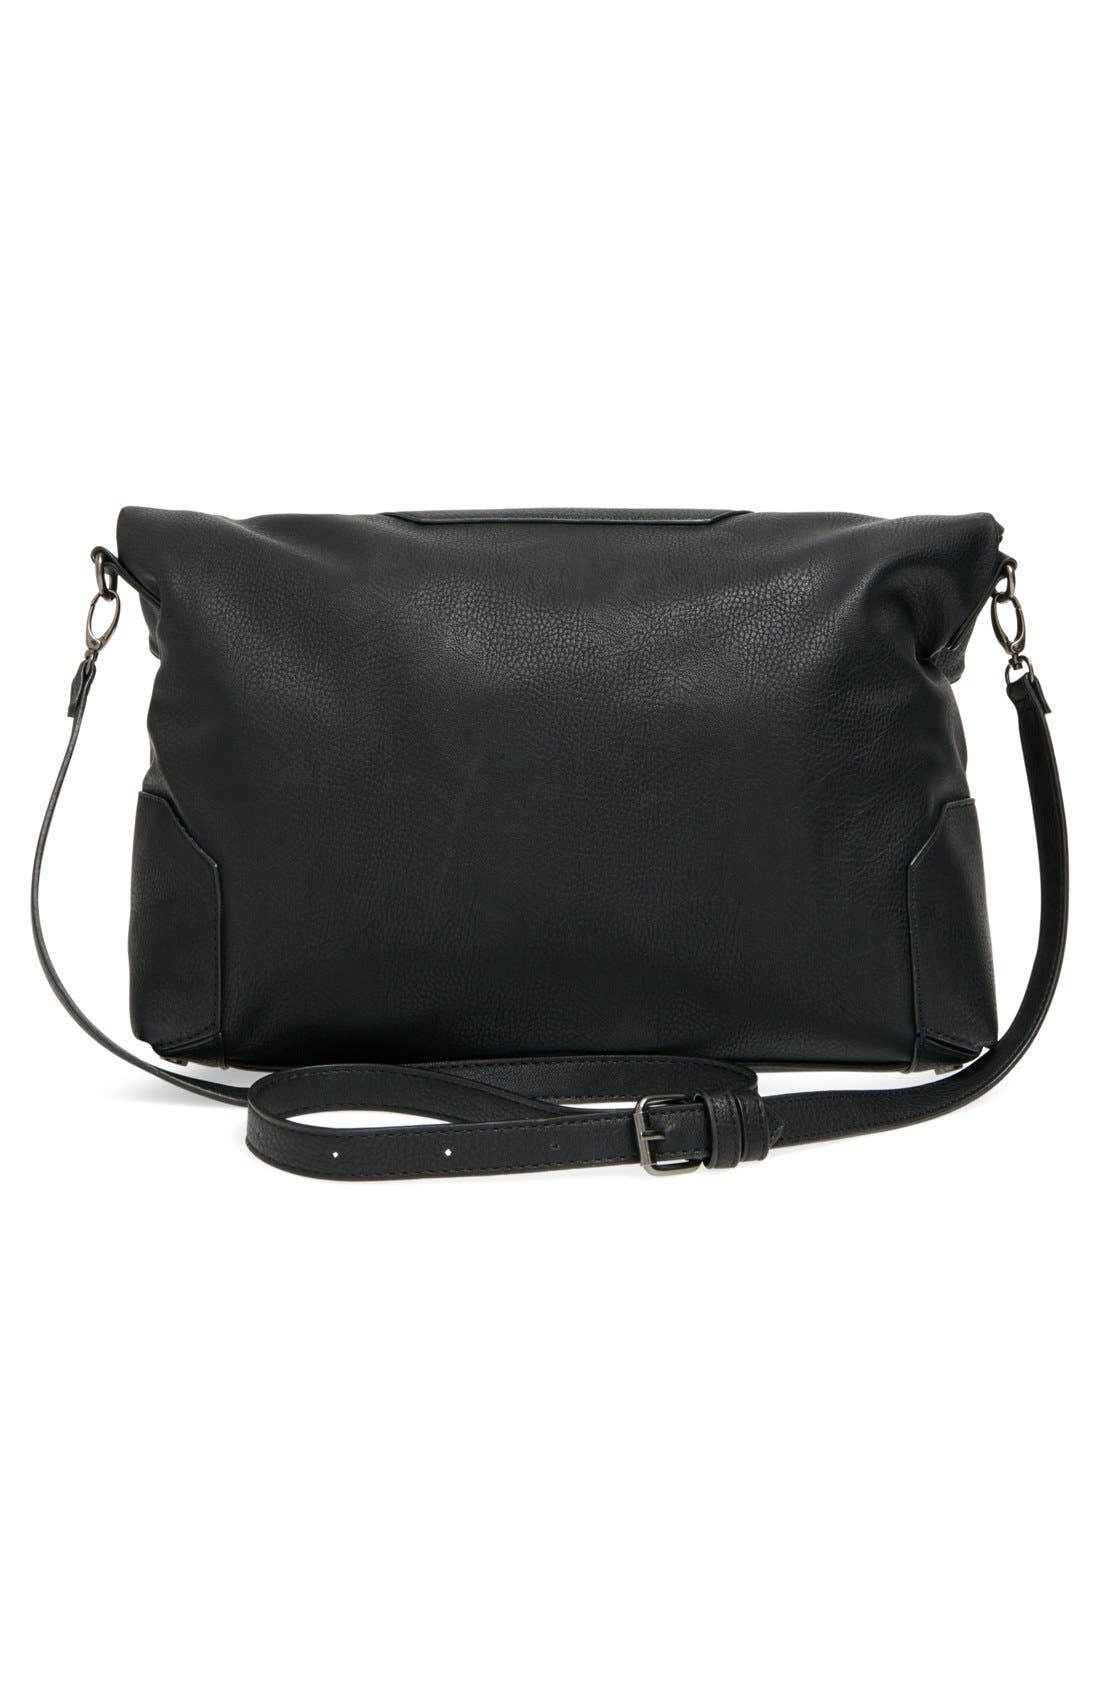 Alternate Image 3  - Sole Society 'Monze' Faux Leather Foldover Tote